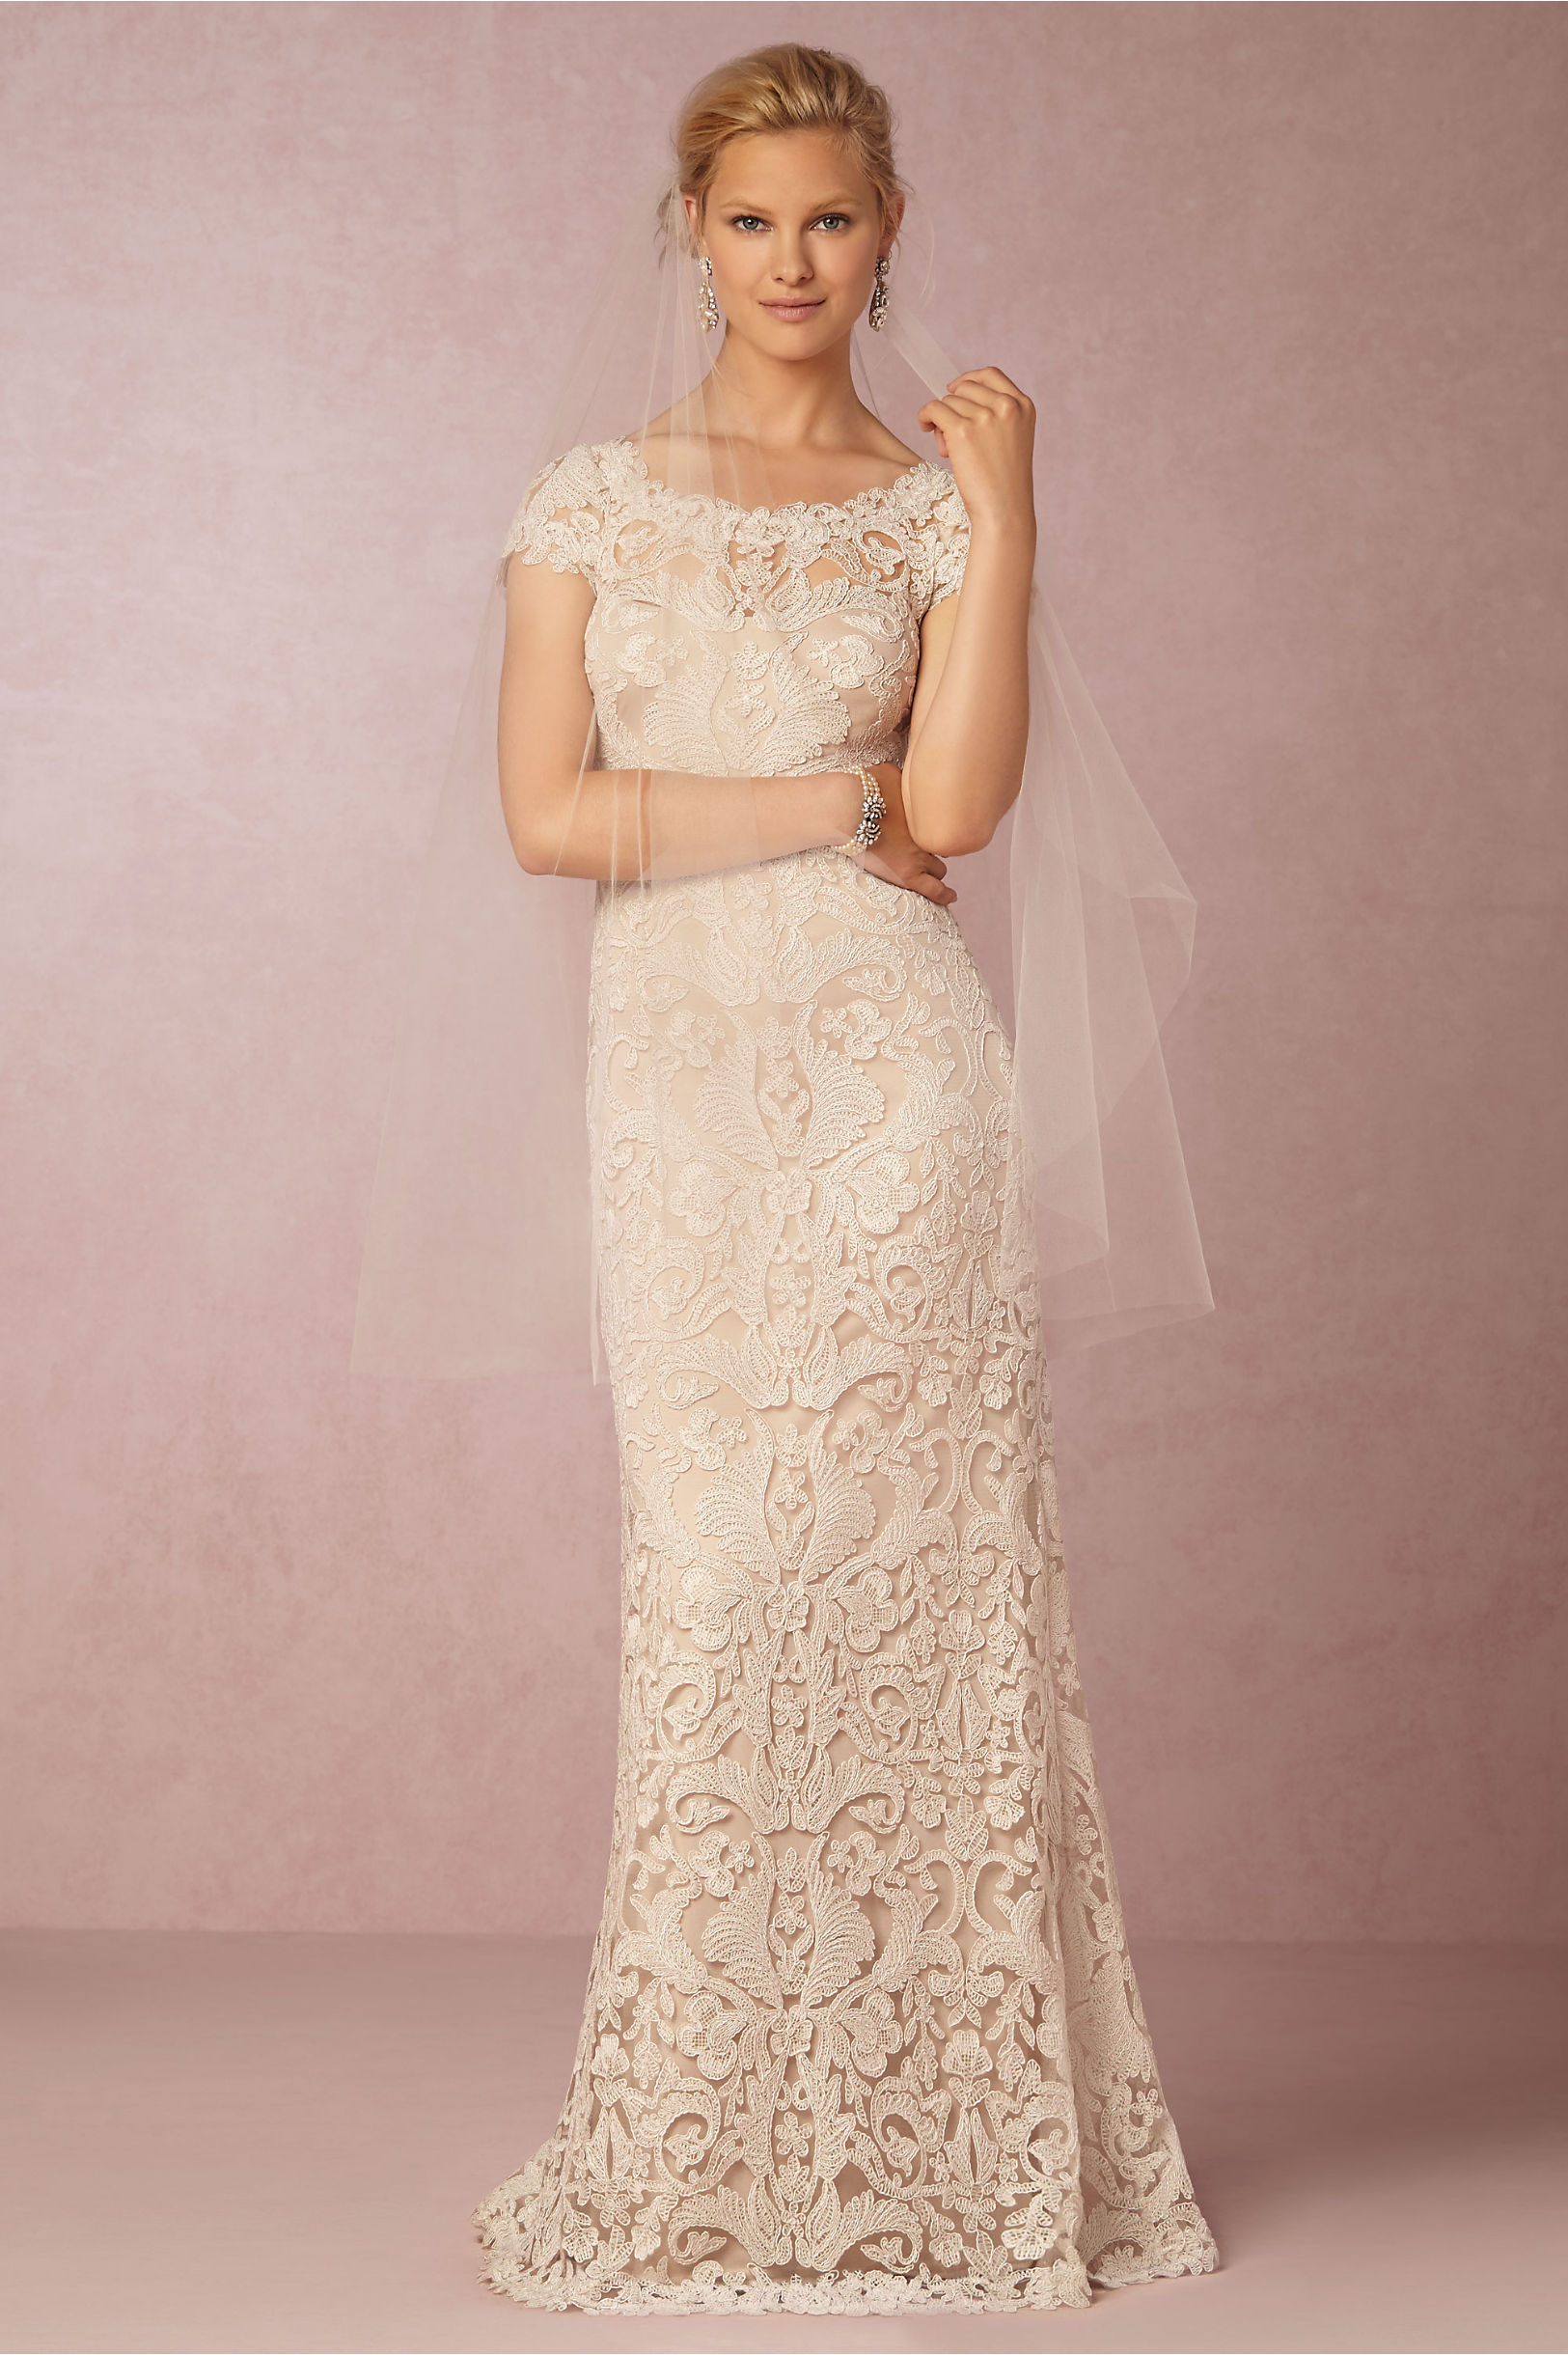 August Gown in Sale | BHLDN